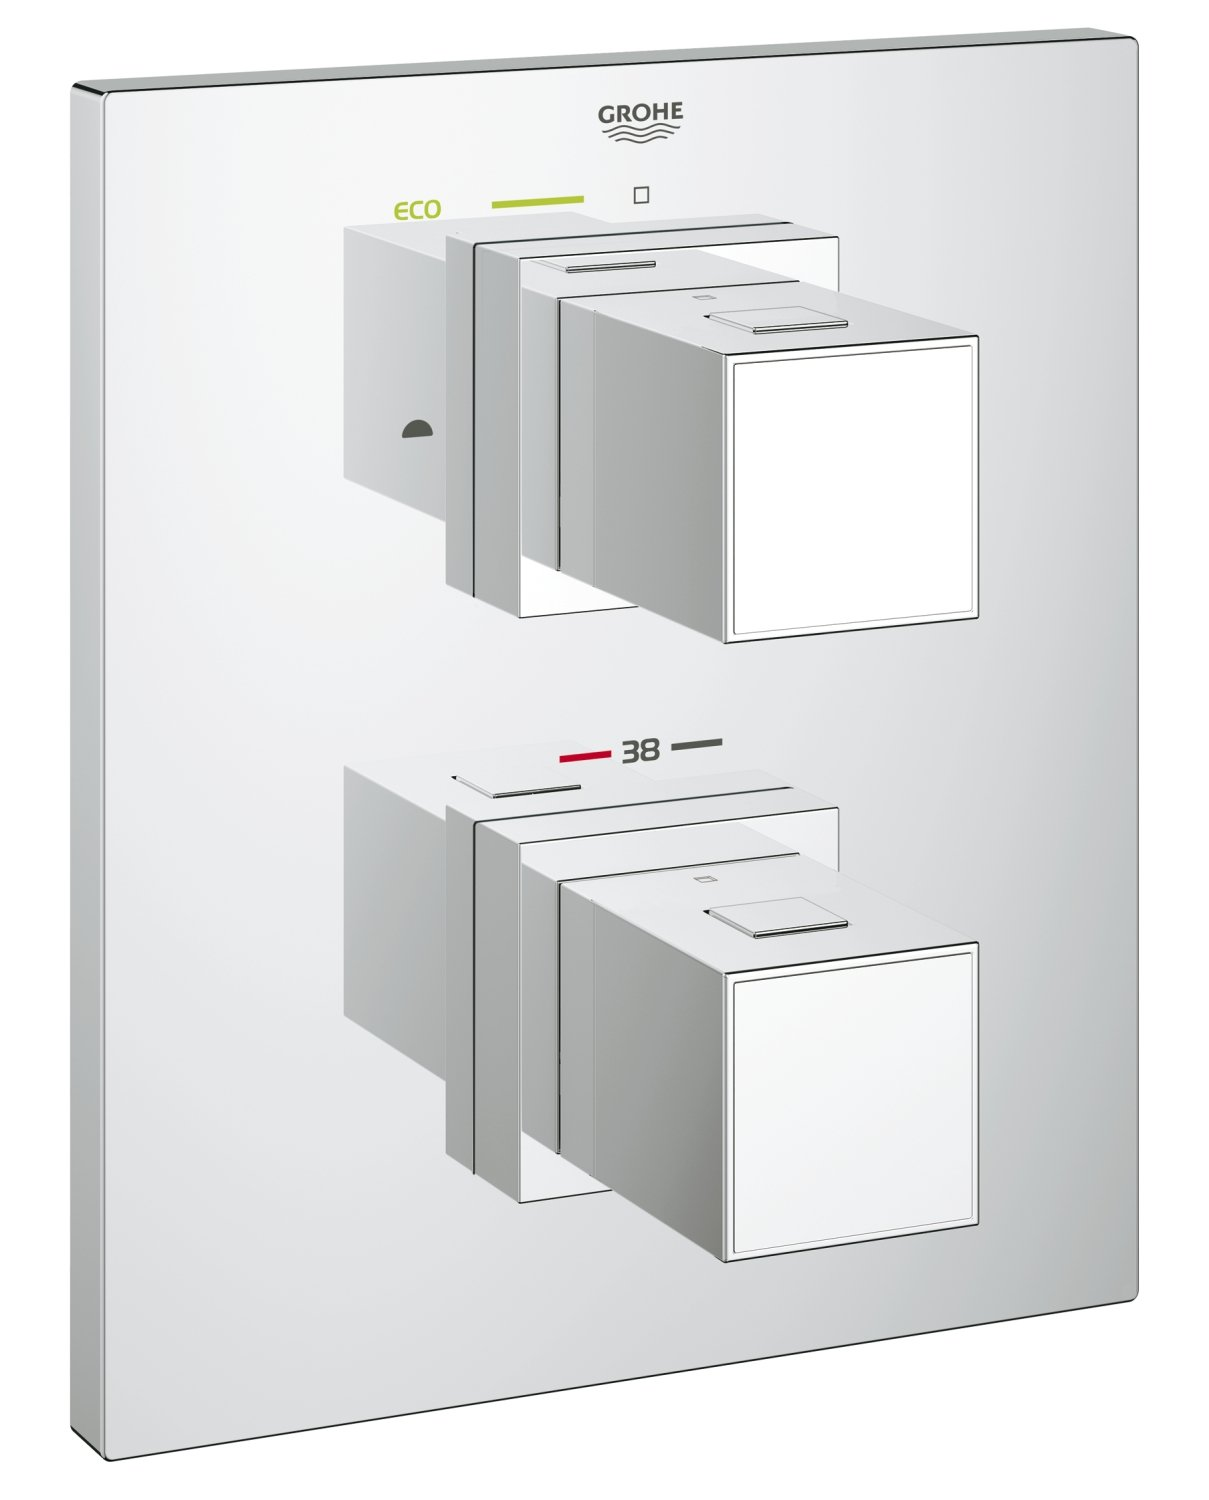 Frisch GROHE 19958000   Grohtherm Cube Thermostat: Amazon.co.uk: DIY & Tools ZX91